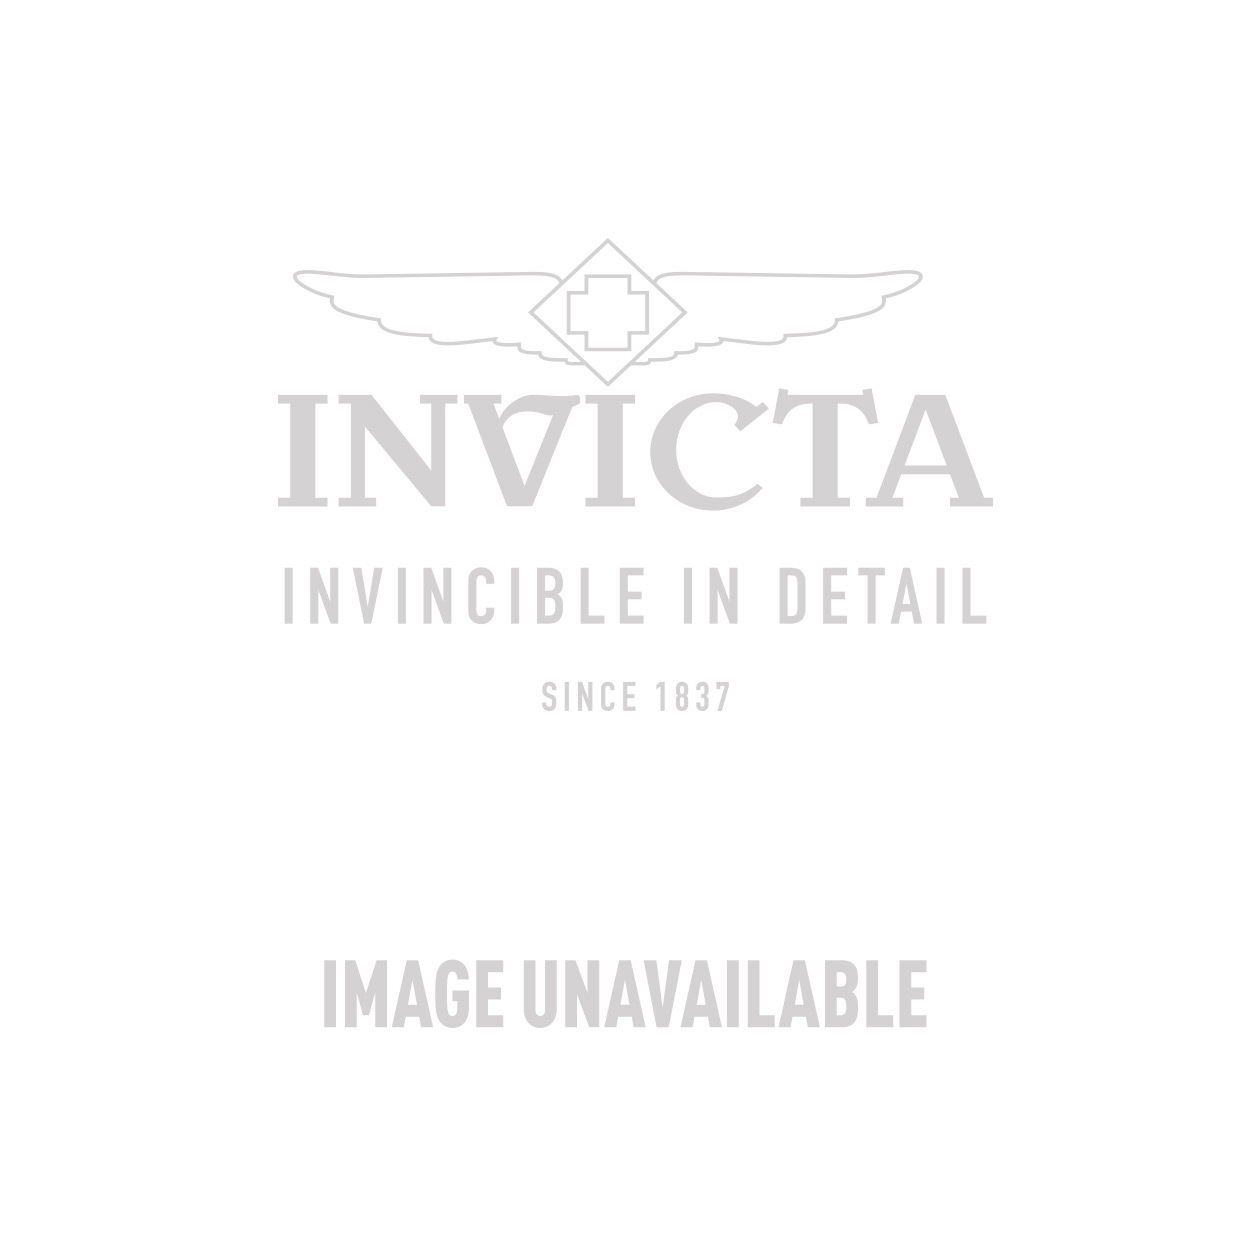 Invicta Angel Swiss Movement Quartz Watch - Stainless Steel case Stainless Steel band - Model 0547